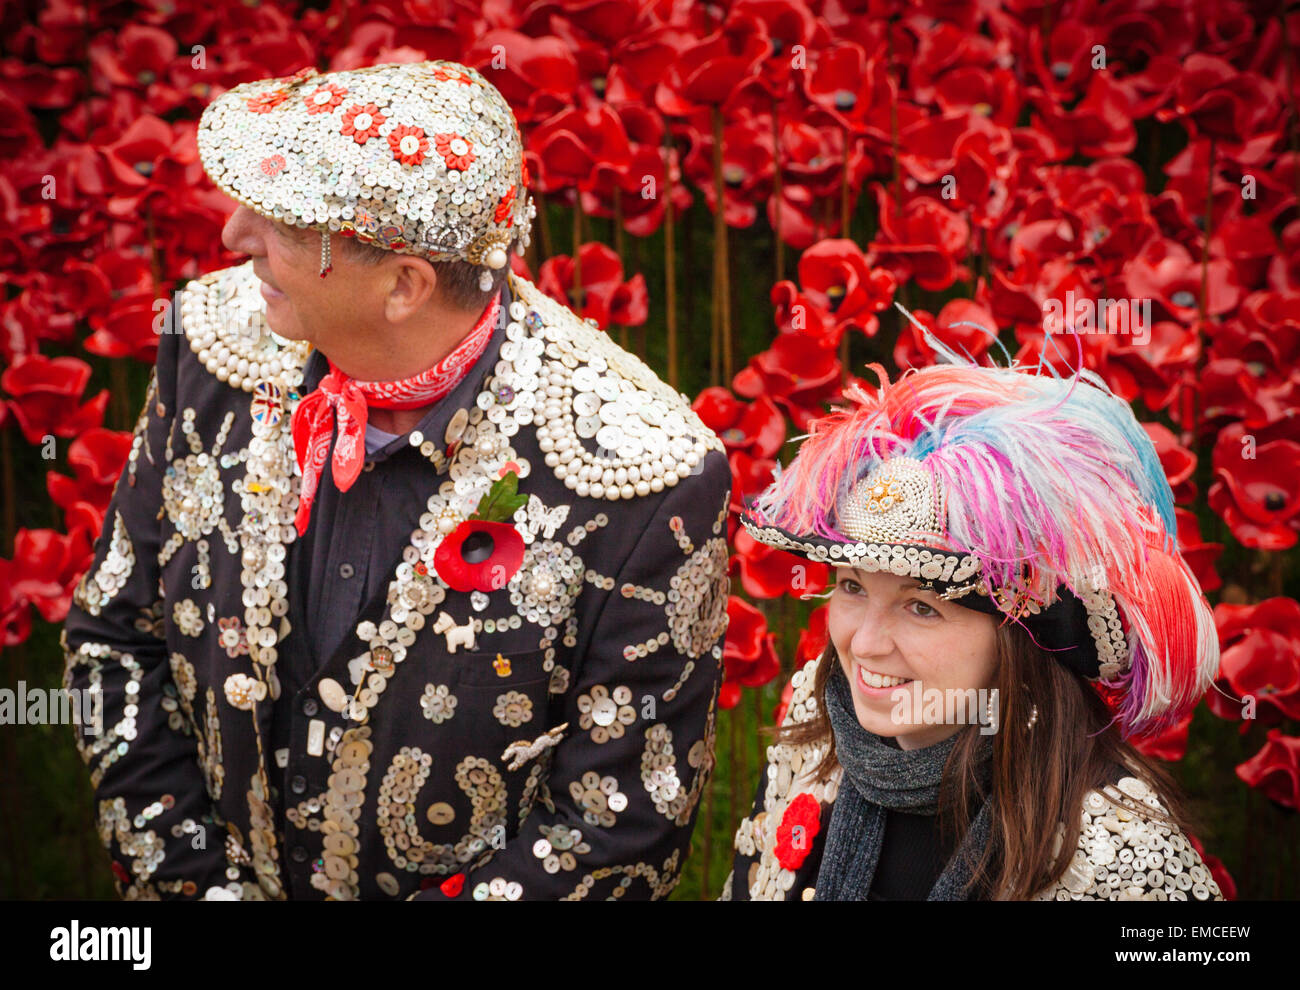 Pearly king and queen or pearly royals on armistice day at the tower of London, UK. - Stock Image